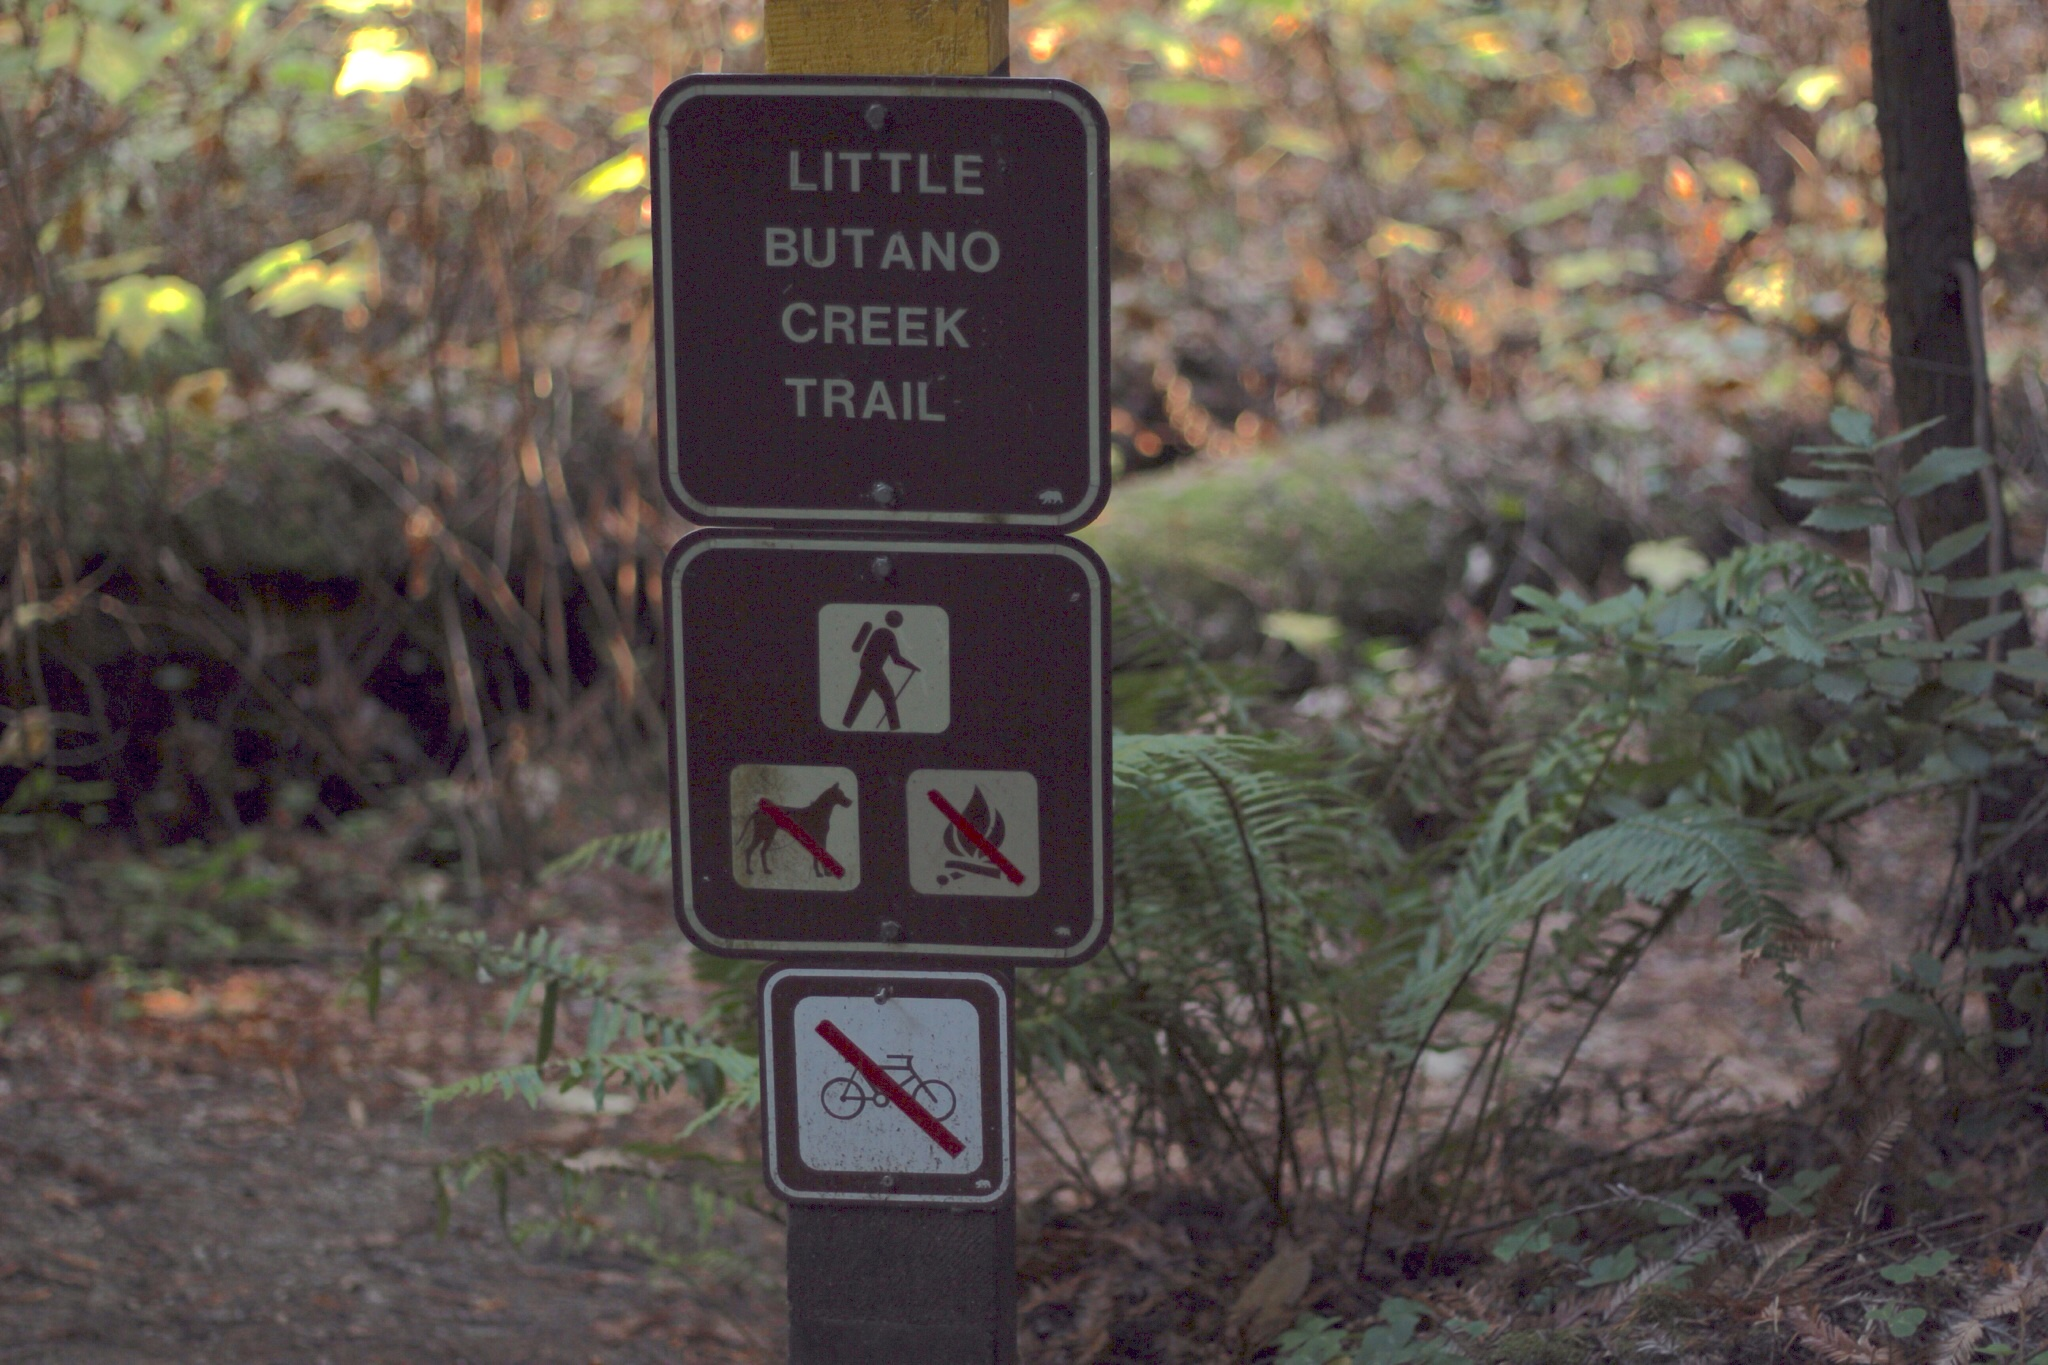 Little Butano Creek sign